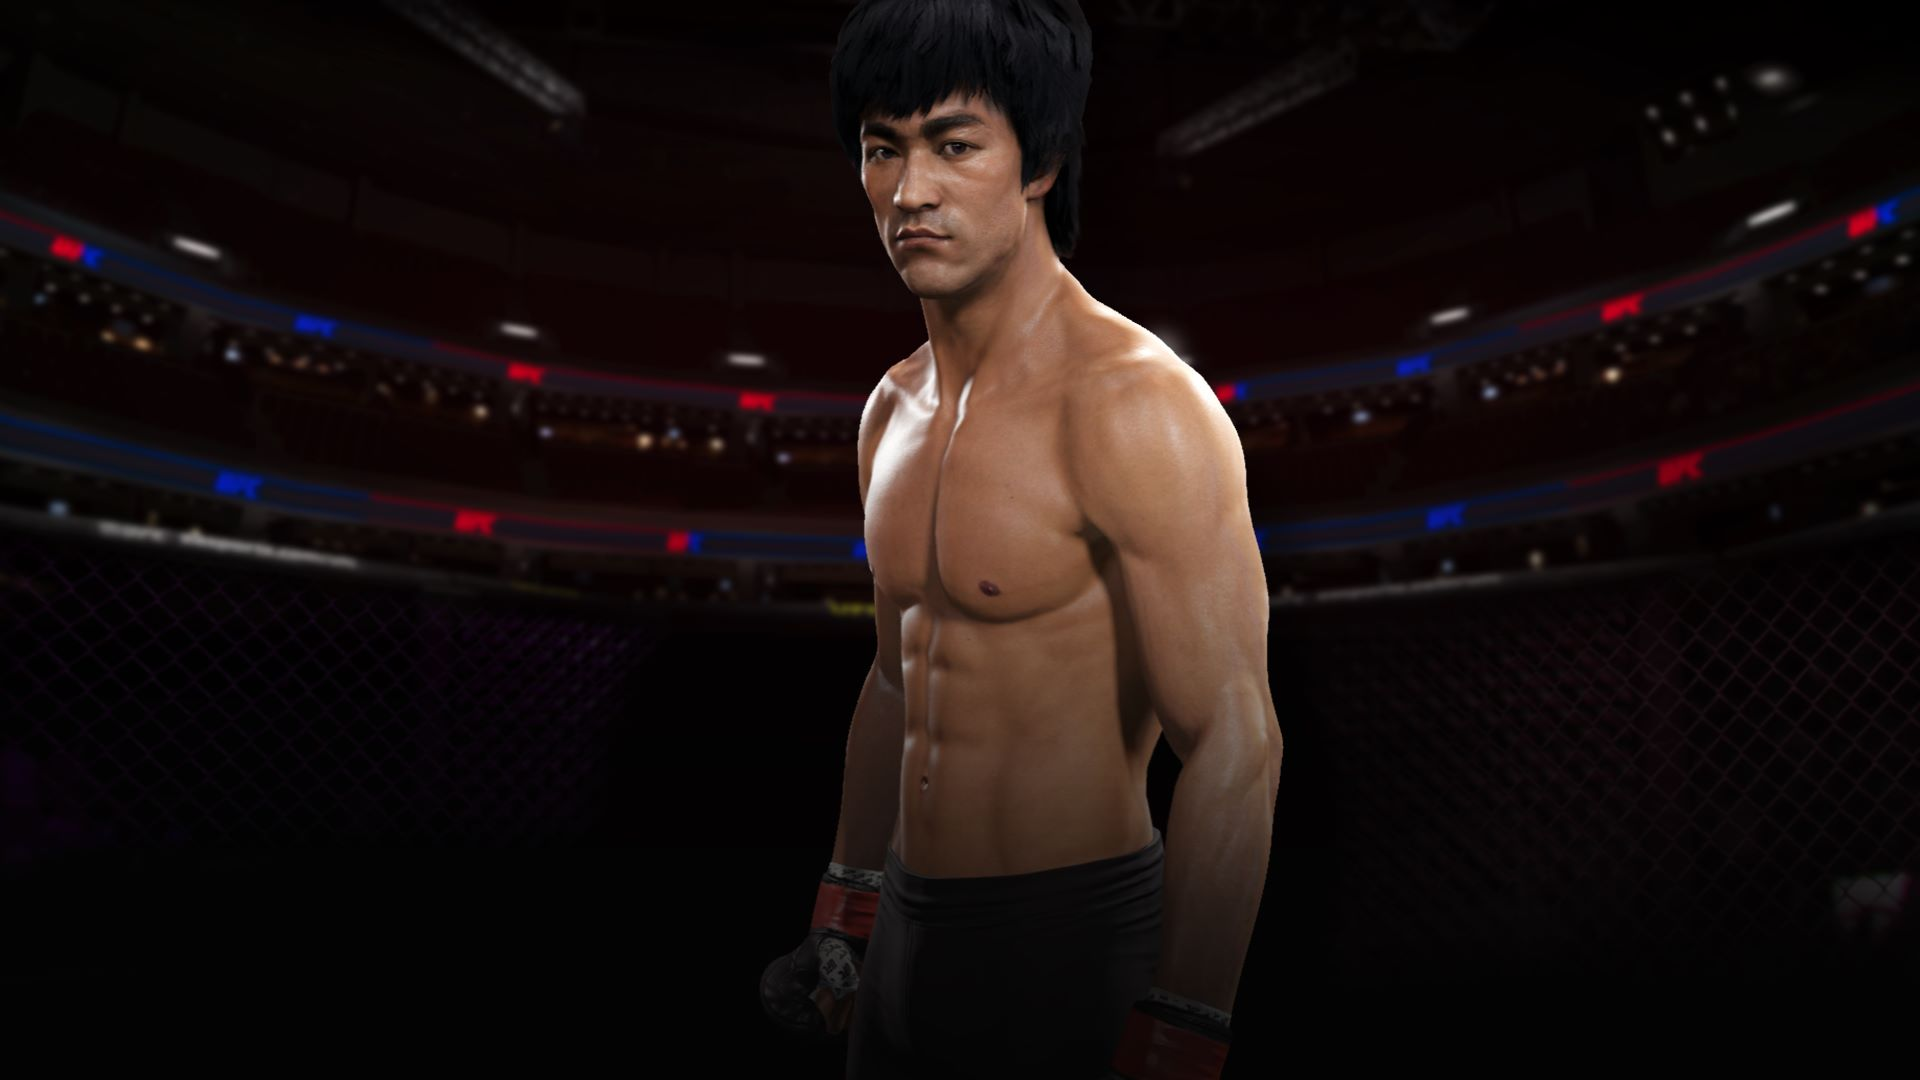 Buy Ea Sports Ufc 2 Bruce Lee Lightweight Microsoft Store Sony Ps4